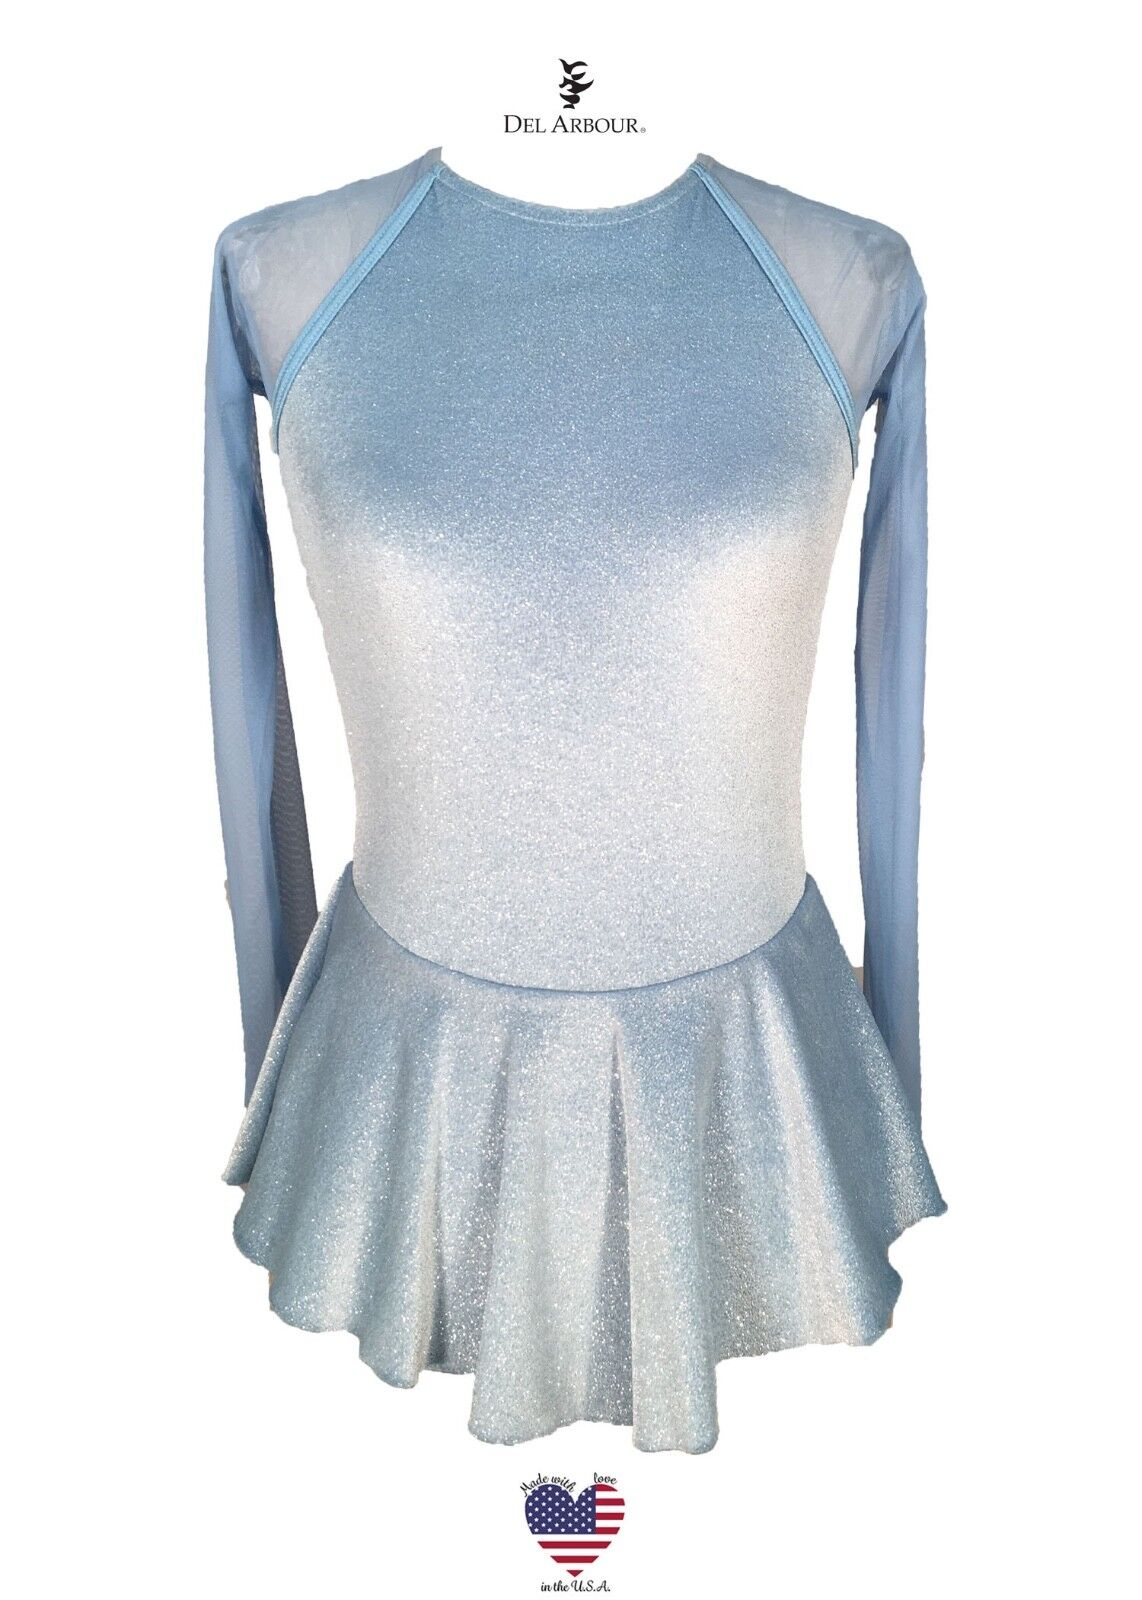 Figure Skating Dress - OFFICIAL DEL ARBOUR FIRST GLIDE 4